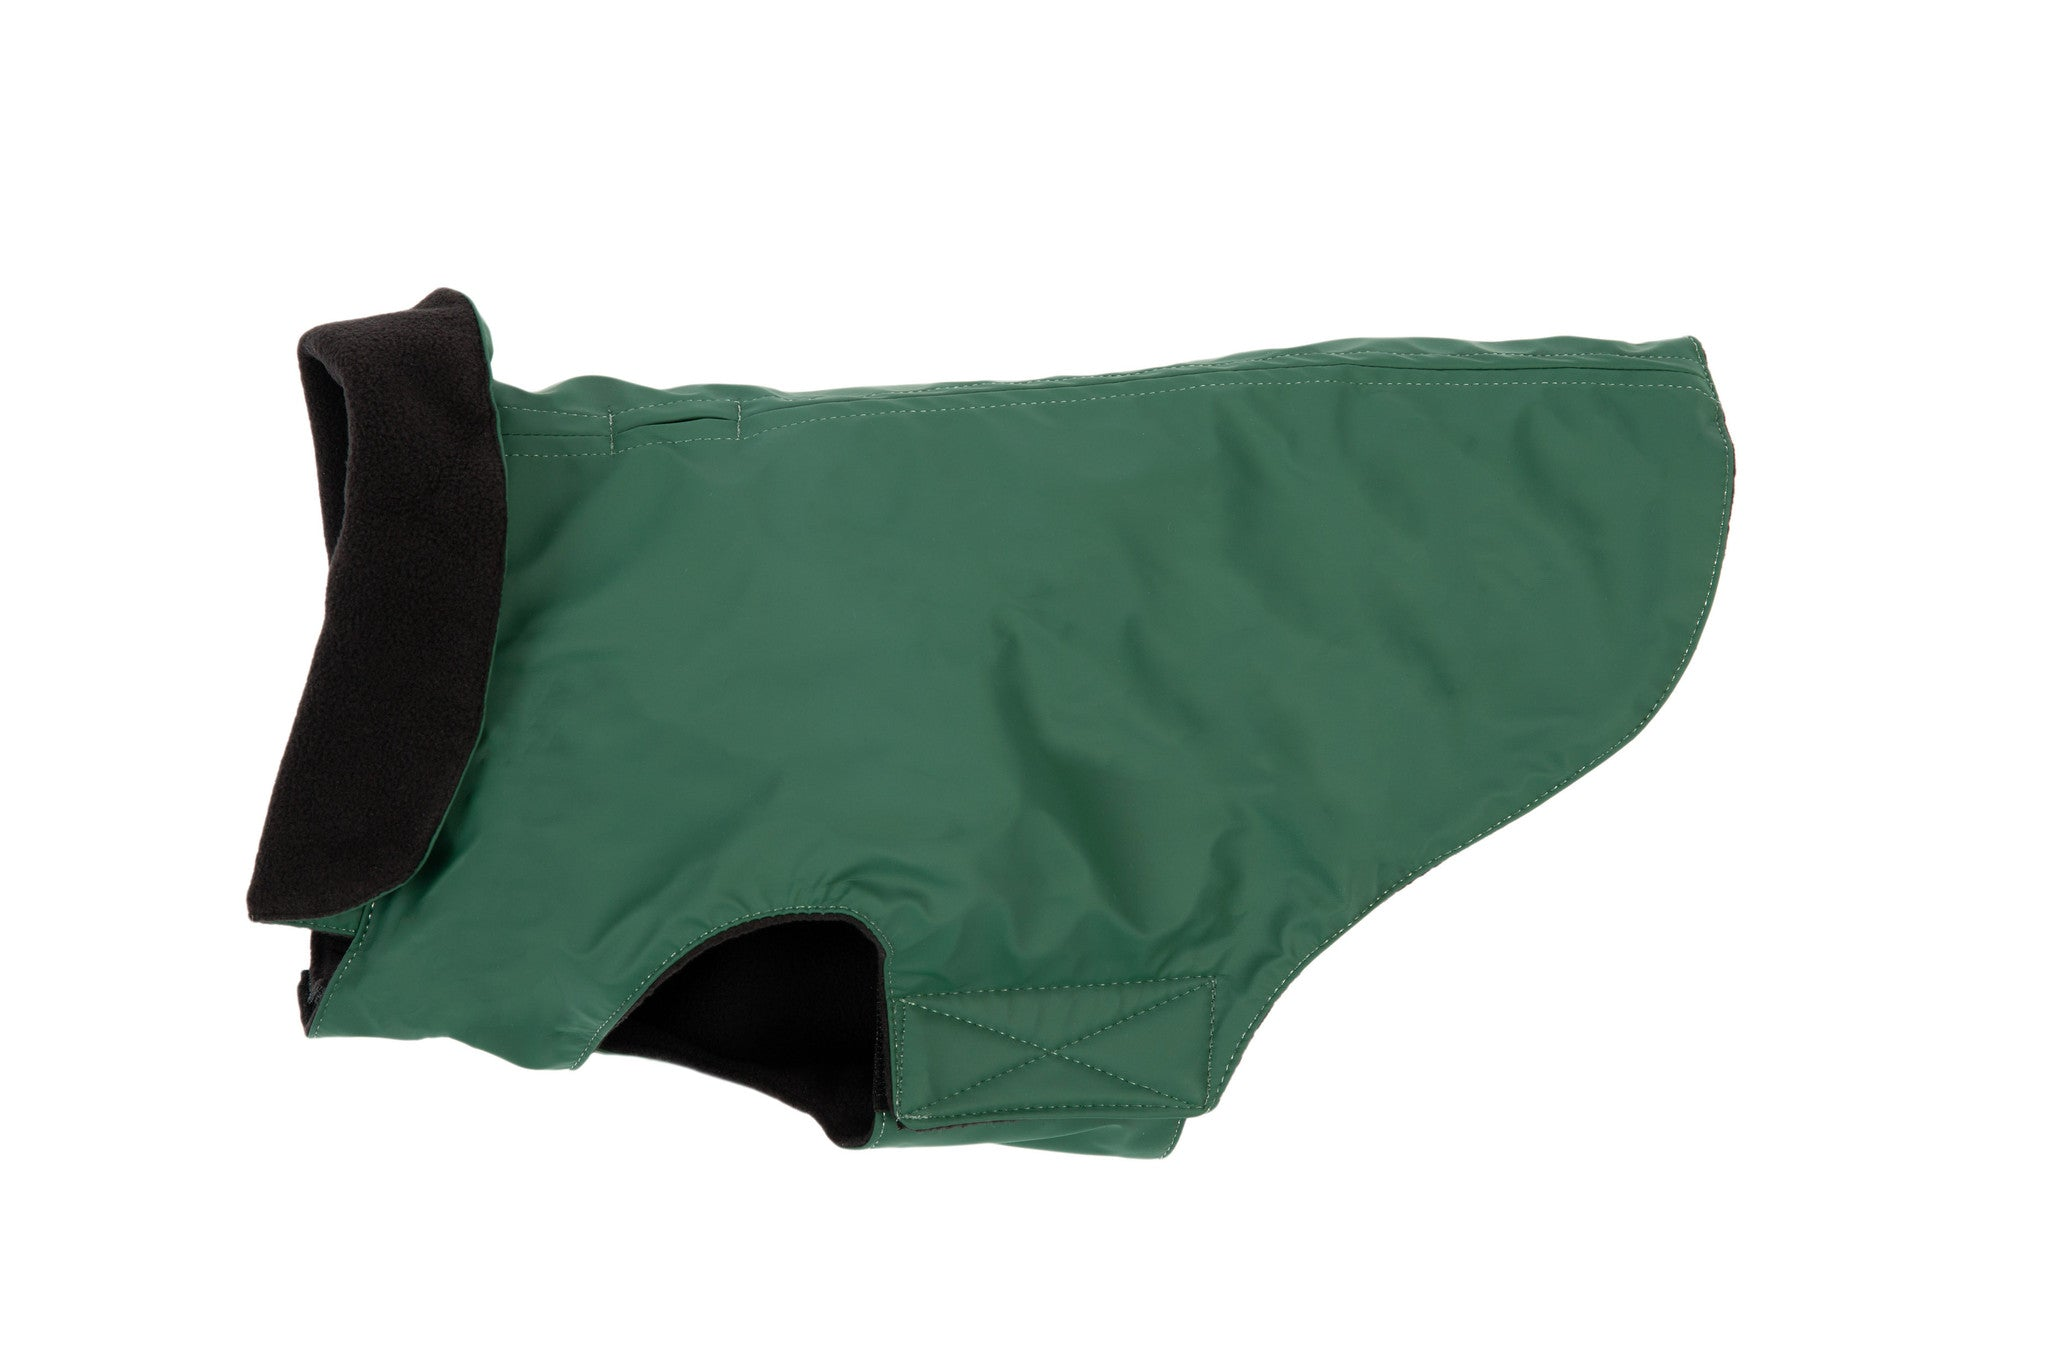 Neoprene, Waterproof, Winter Lined Raincoats, 4 Colors